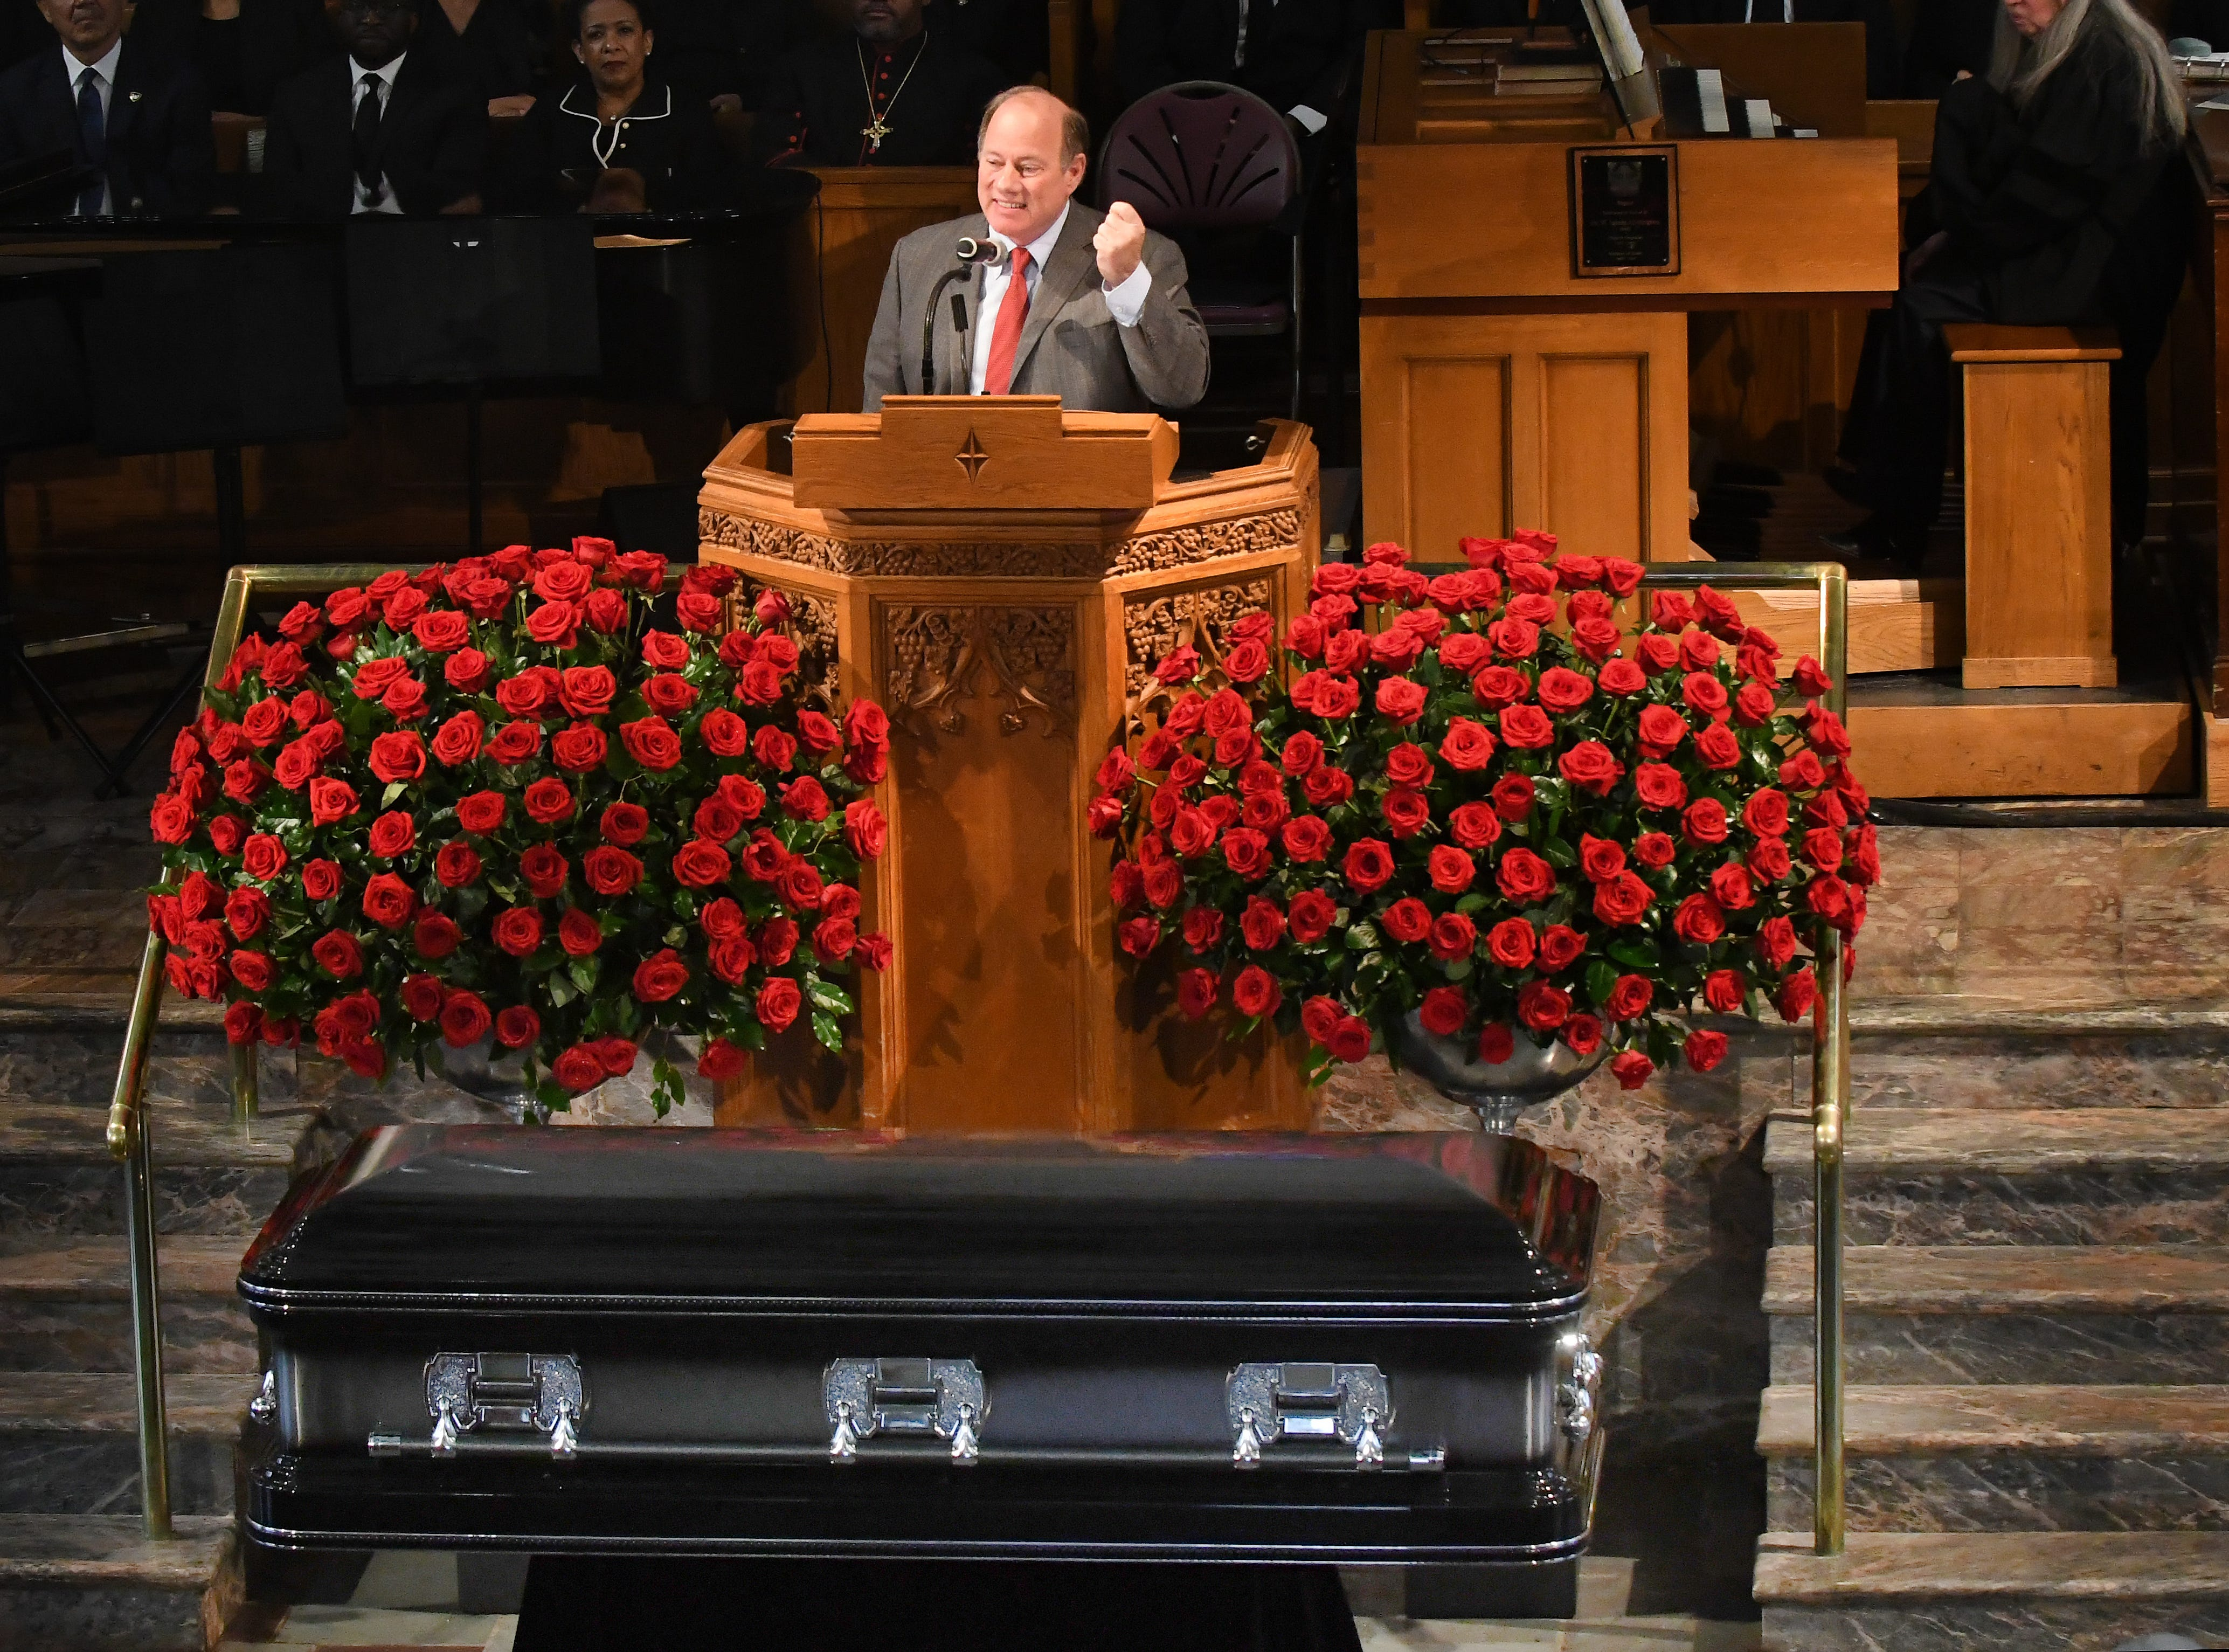 Detroit Mayor Mike Duggan speaks at the podium during the funeral of Judge Keith.